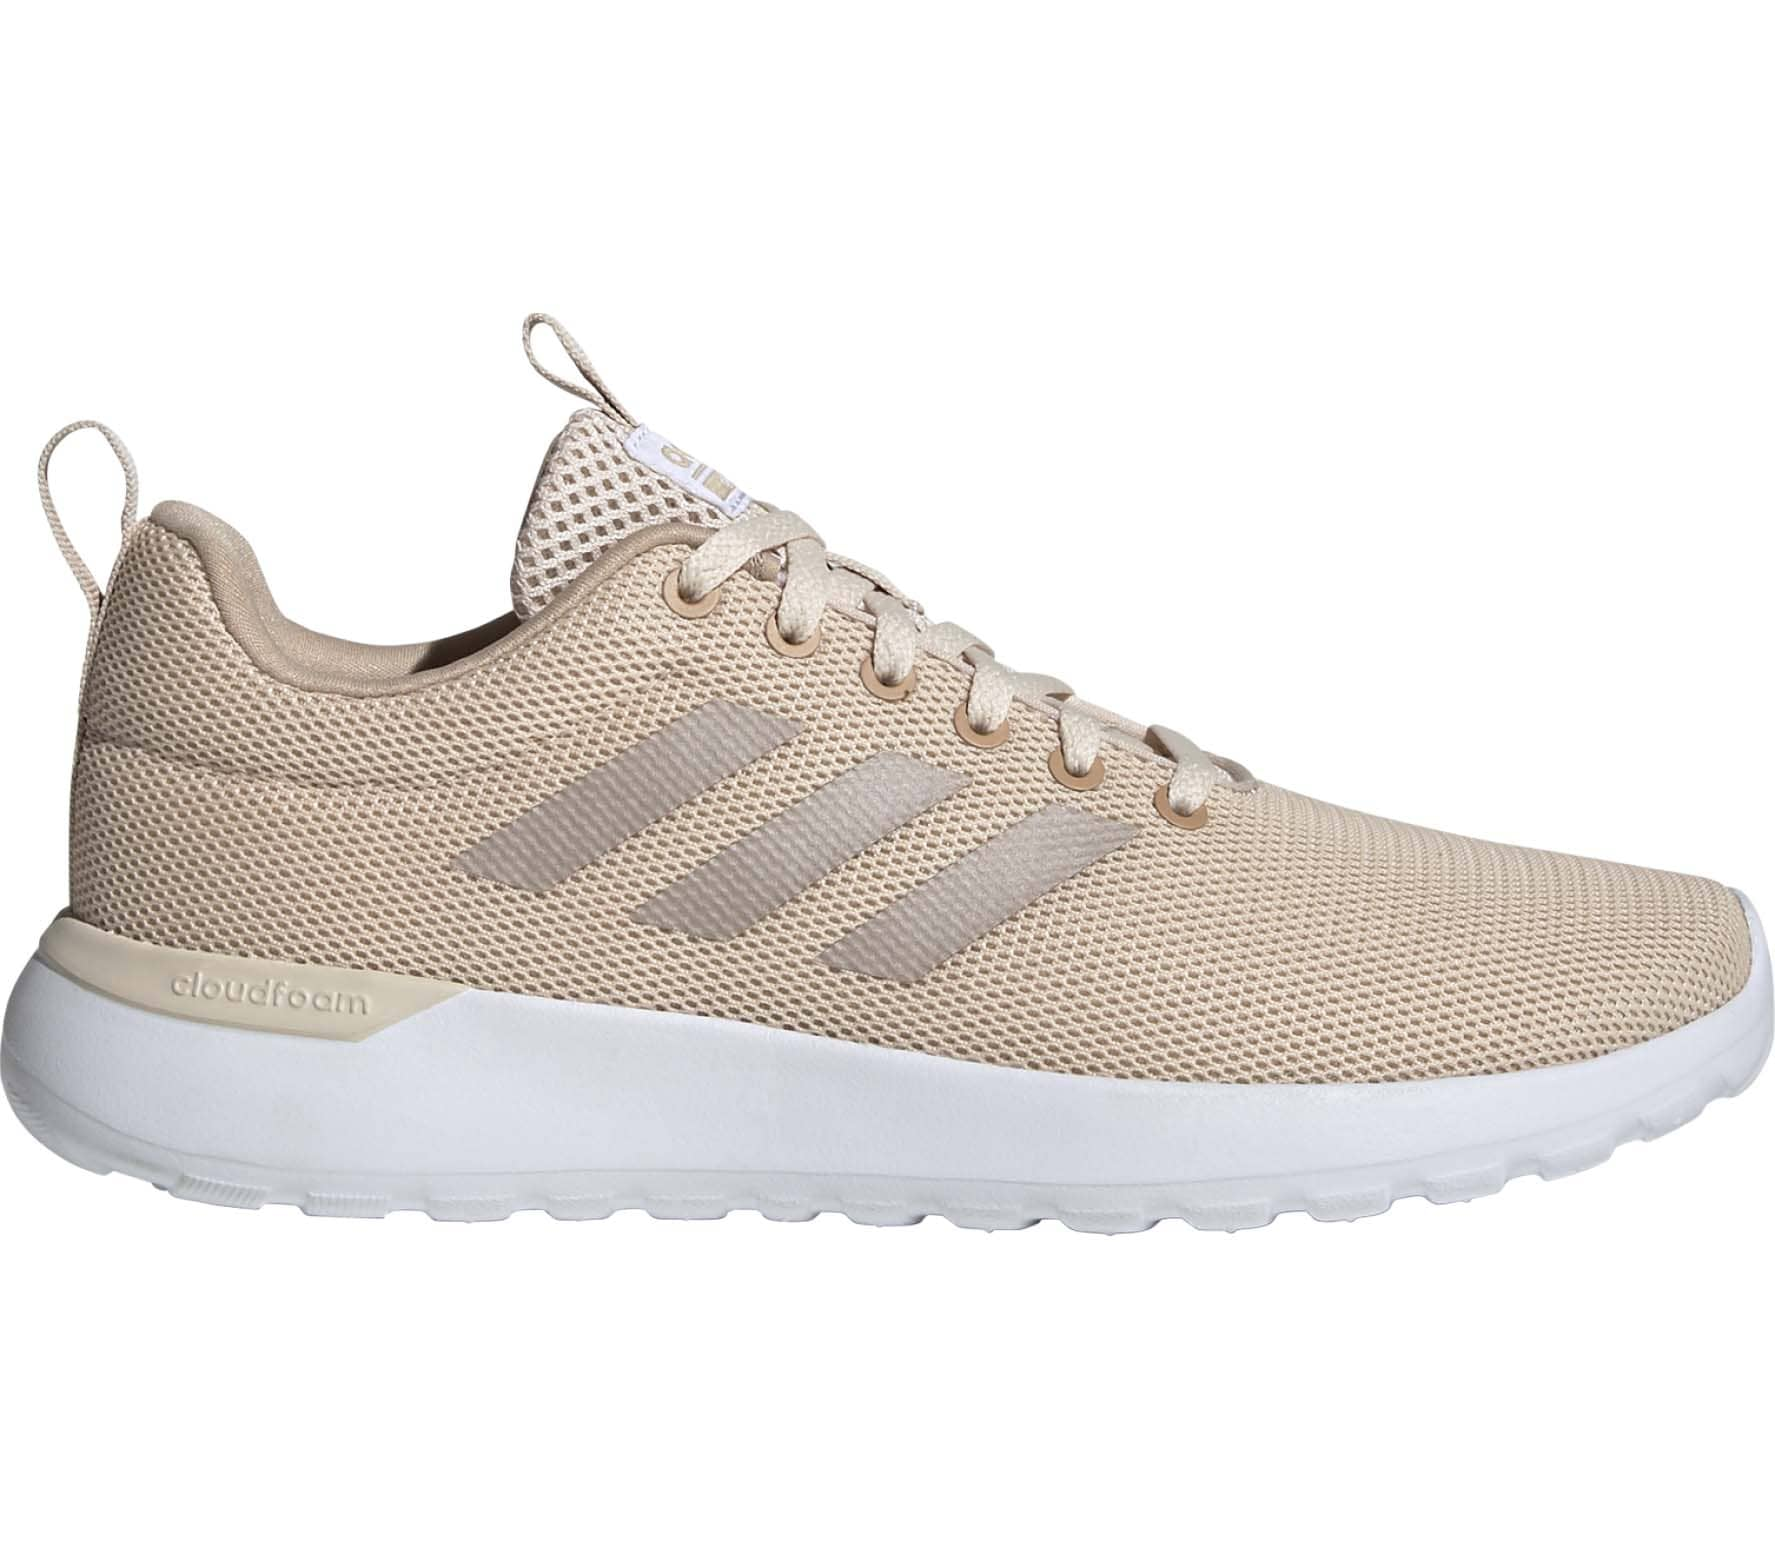 ac19848dc01 adidas Lite Racer CLN Women Running Shoes beige - buy it at the ...